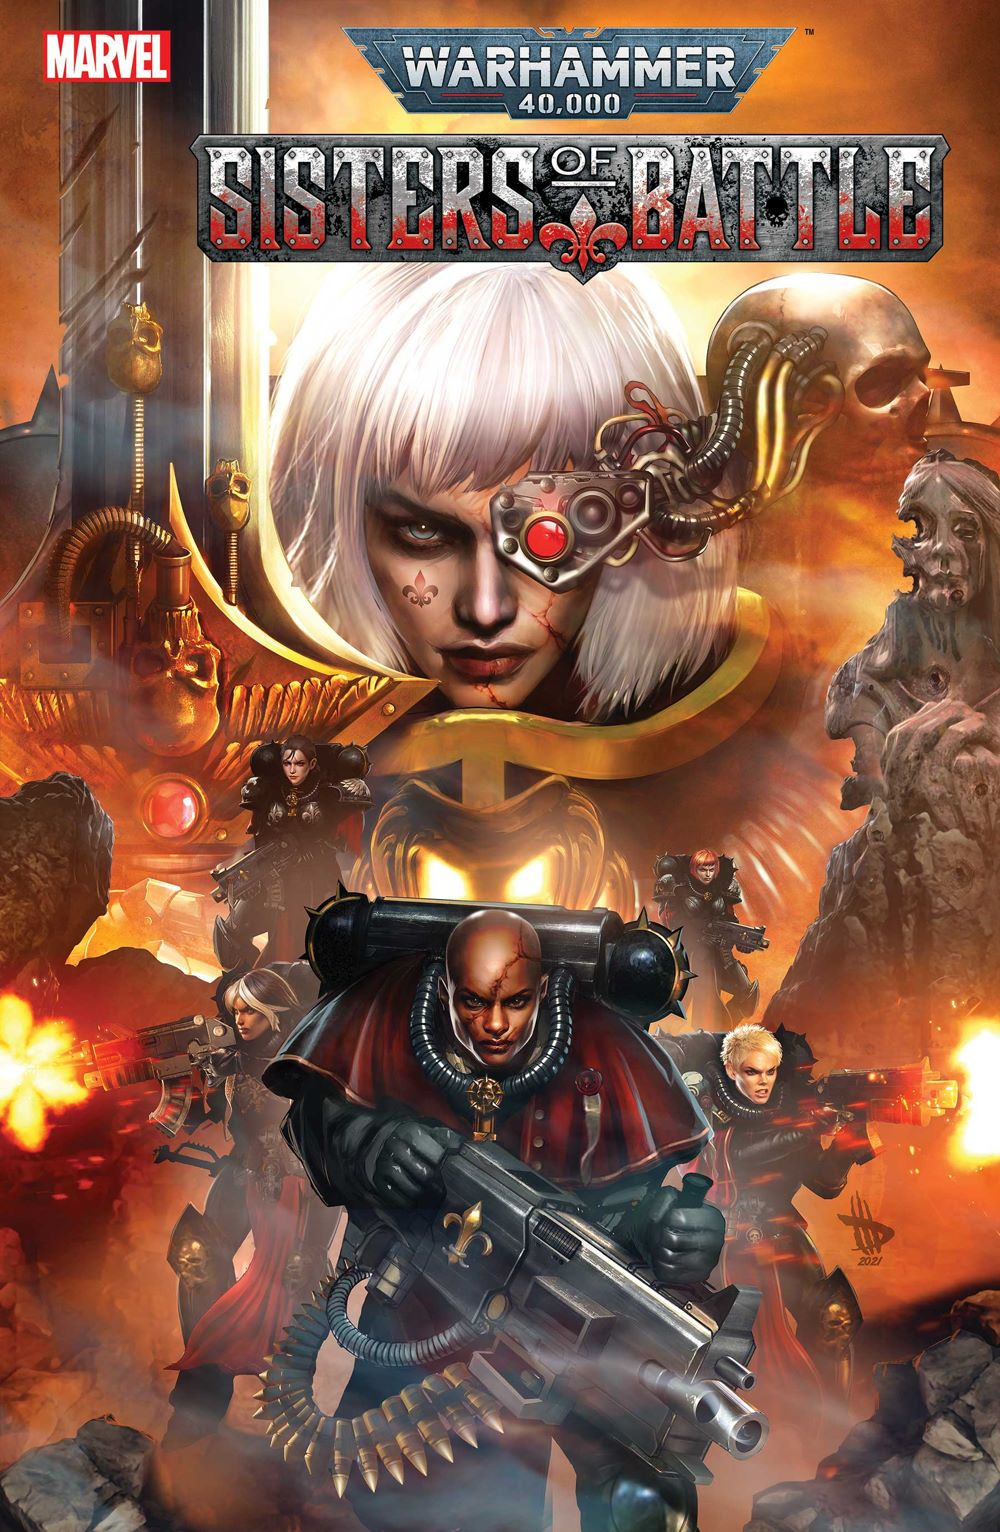 WARHAMMERSOB2021001_cover The future is grim in WARHAMMER 40,000: SISTERS OF BATTLE